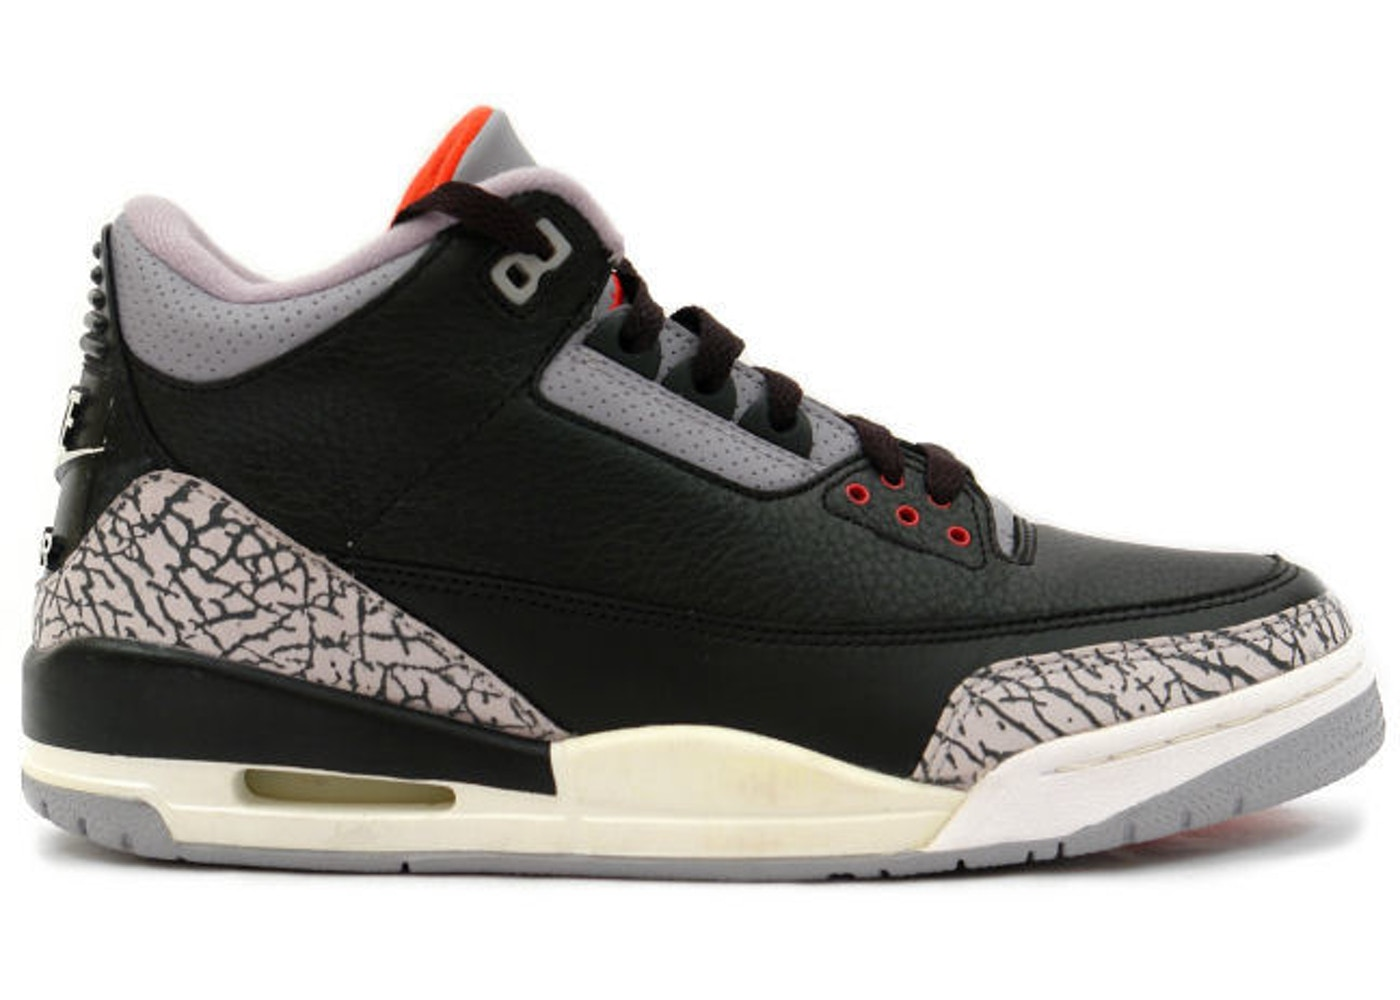 timeless design 42d05 837c1 Jordan 3 Retro Black Cement (1994)